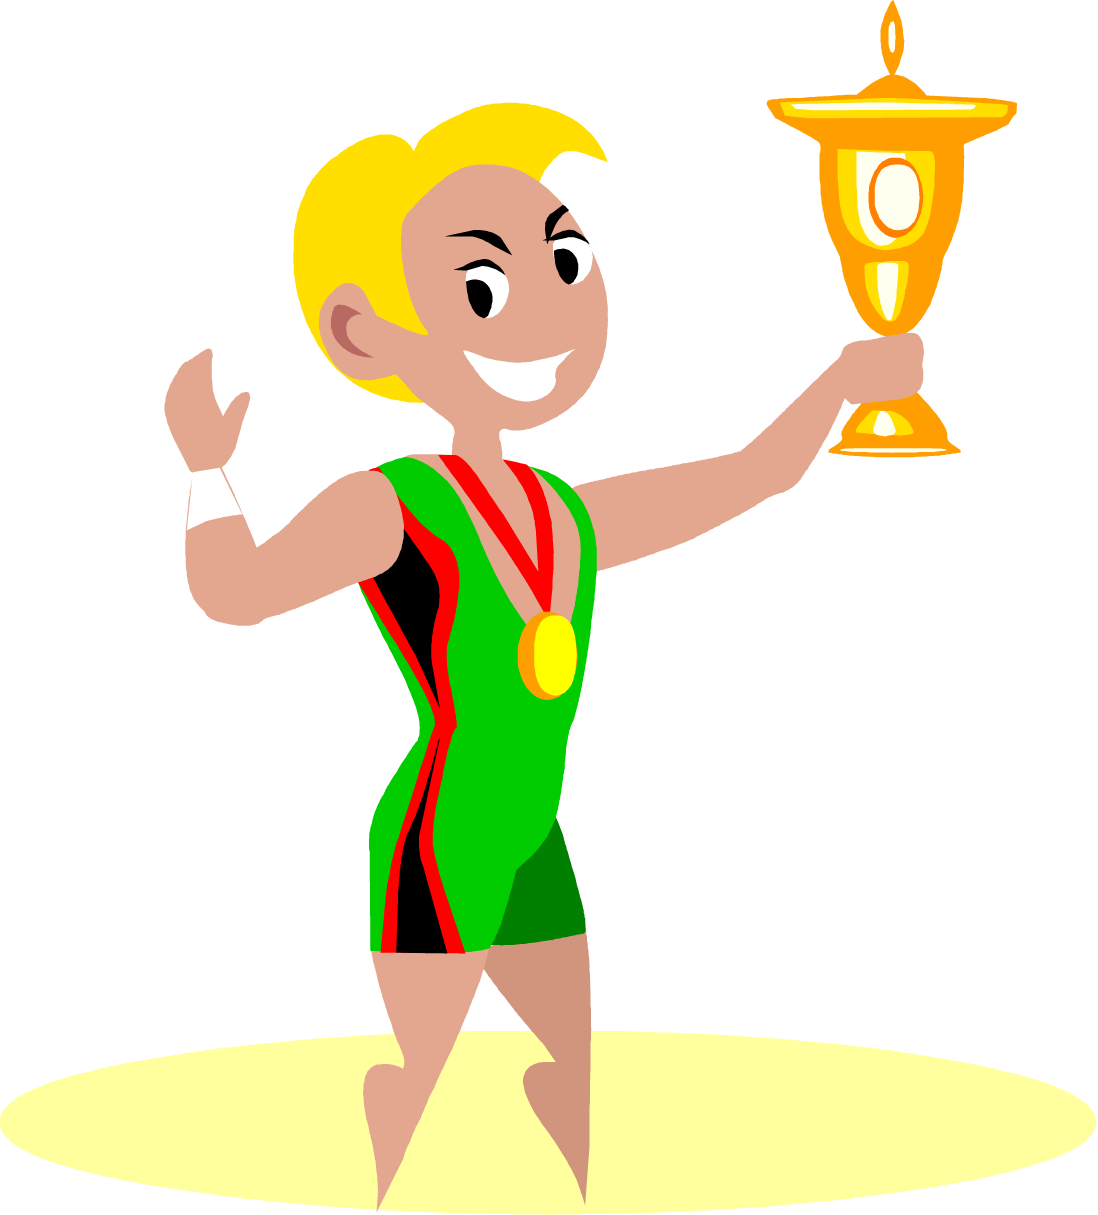 Wrestling medal clipart clipart free stock Win Clipart | Free download best Win Clipart on ClipArtMag.com clipart free stock